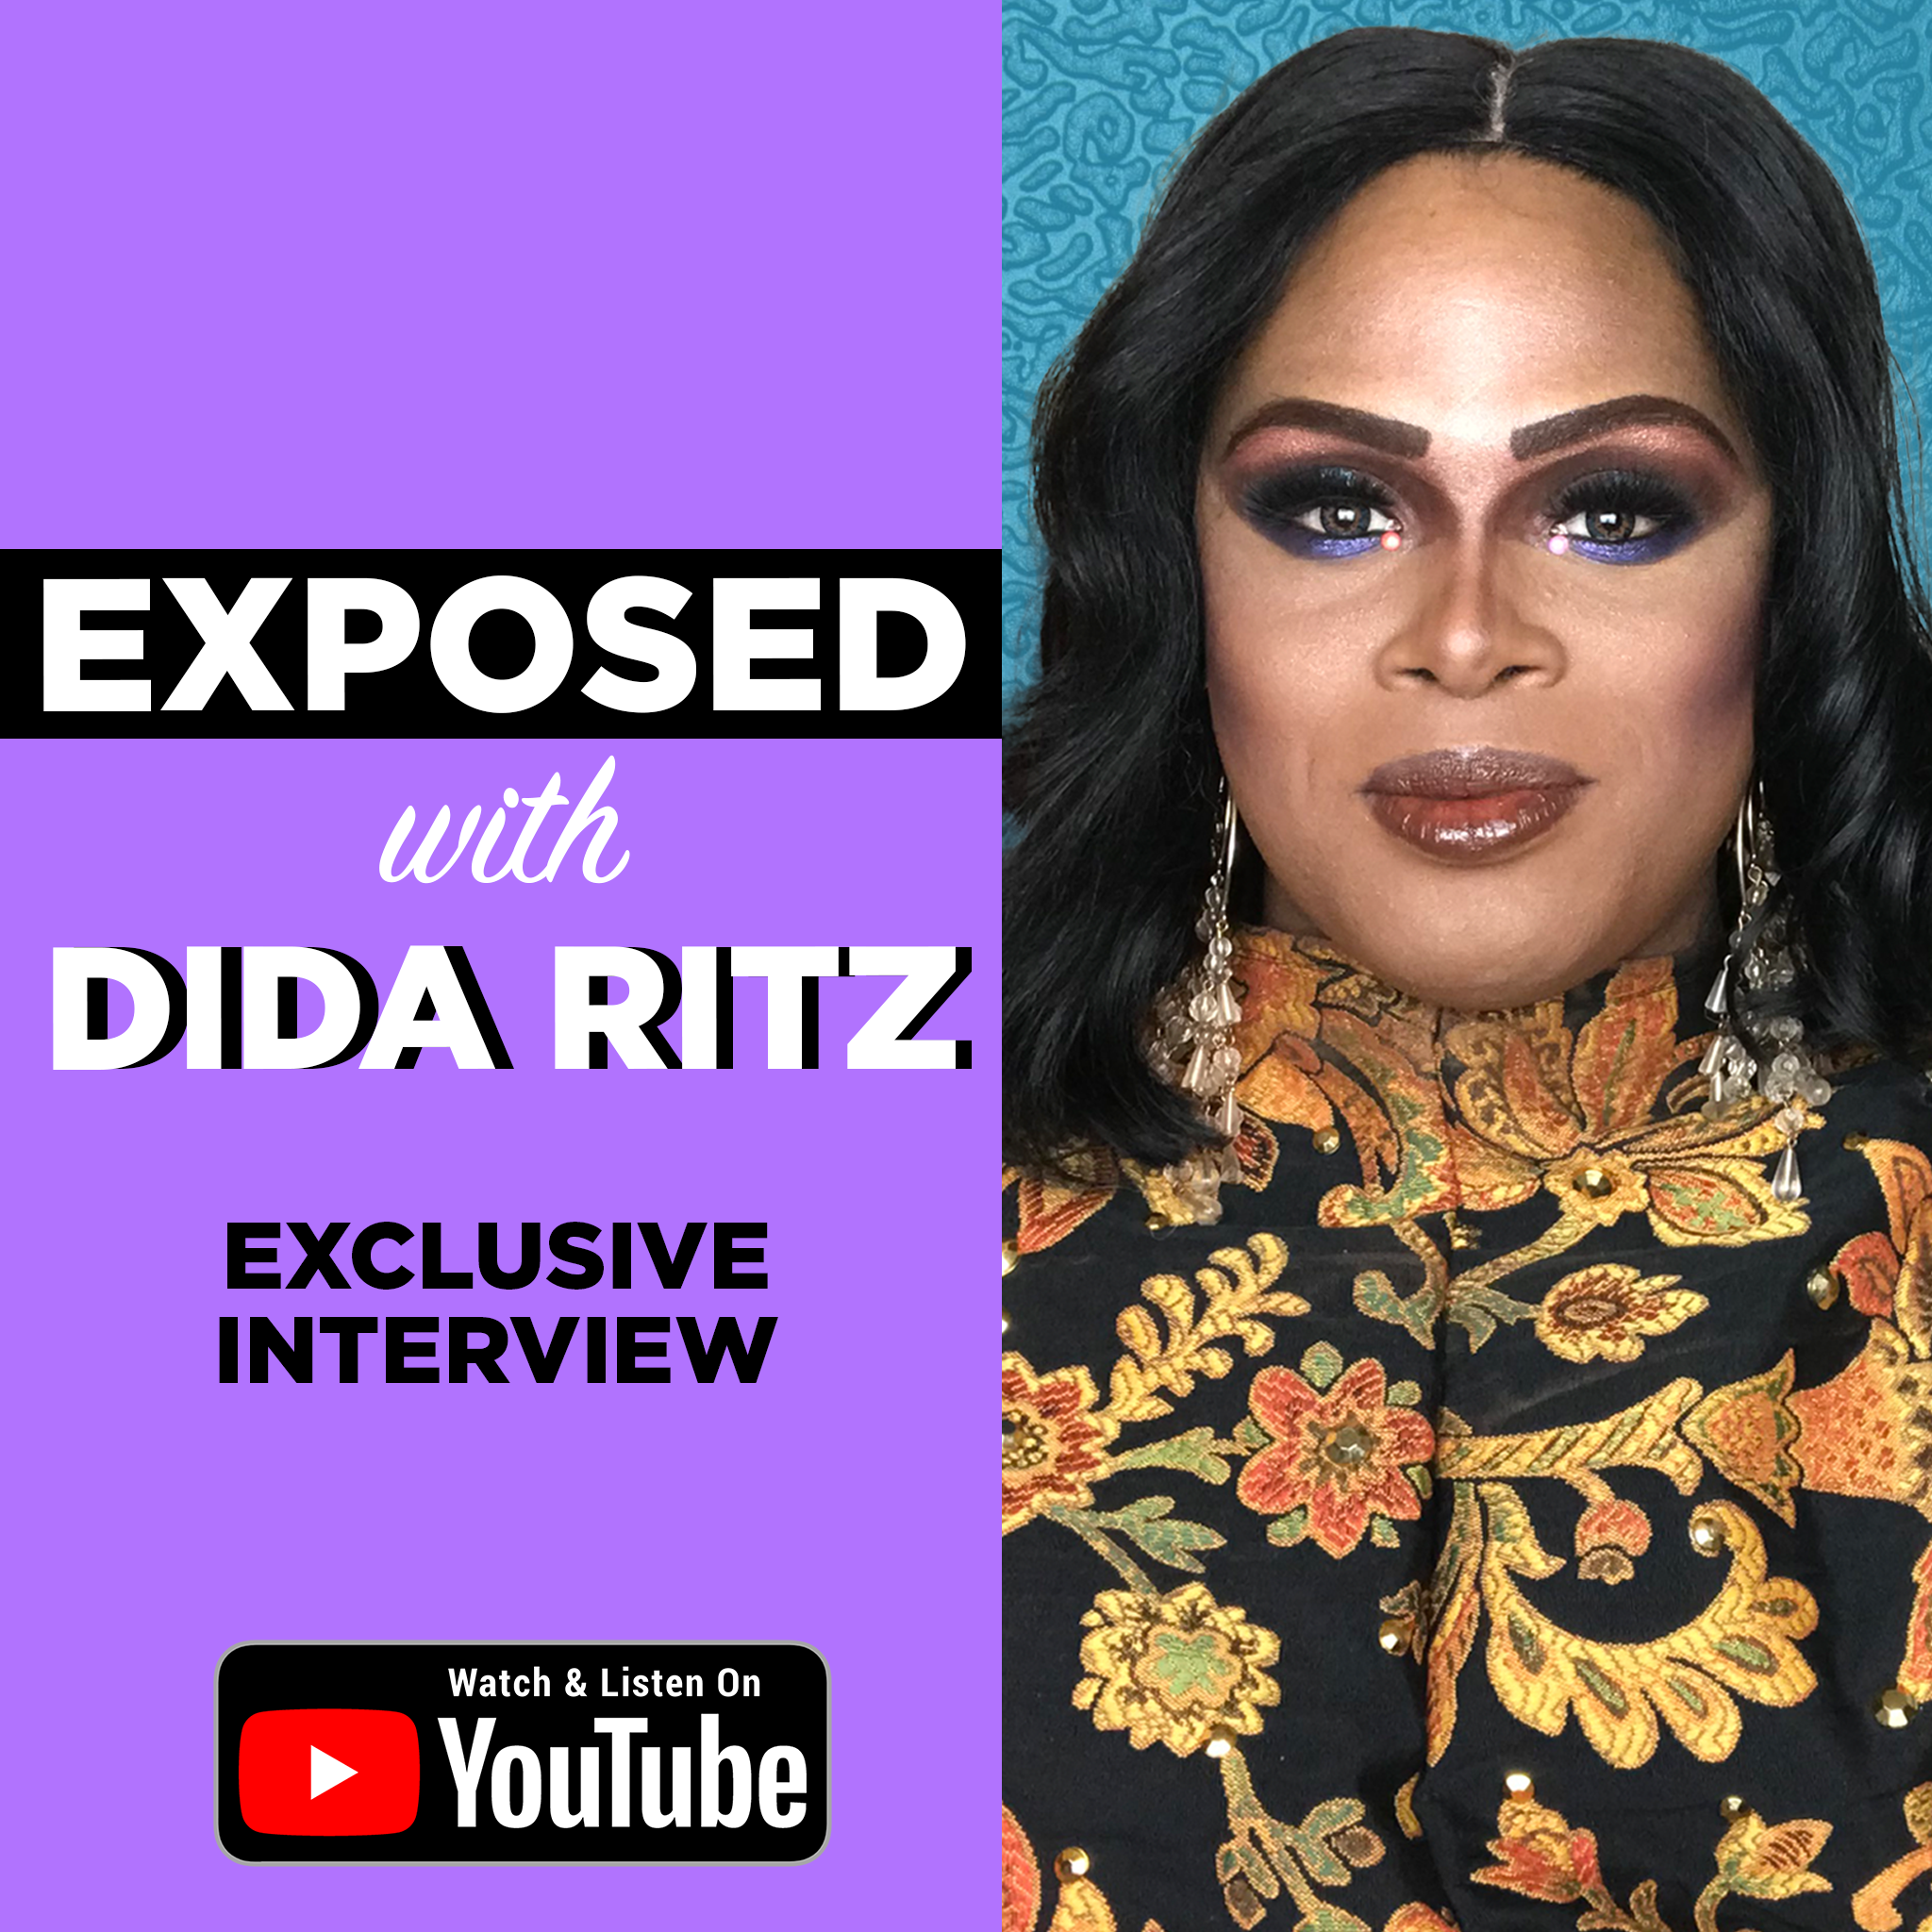 S3E1 - DiDa Ritz: Exposed (The Full Interview)